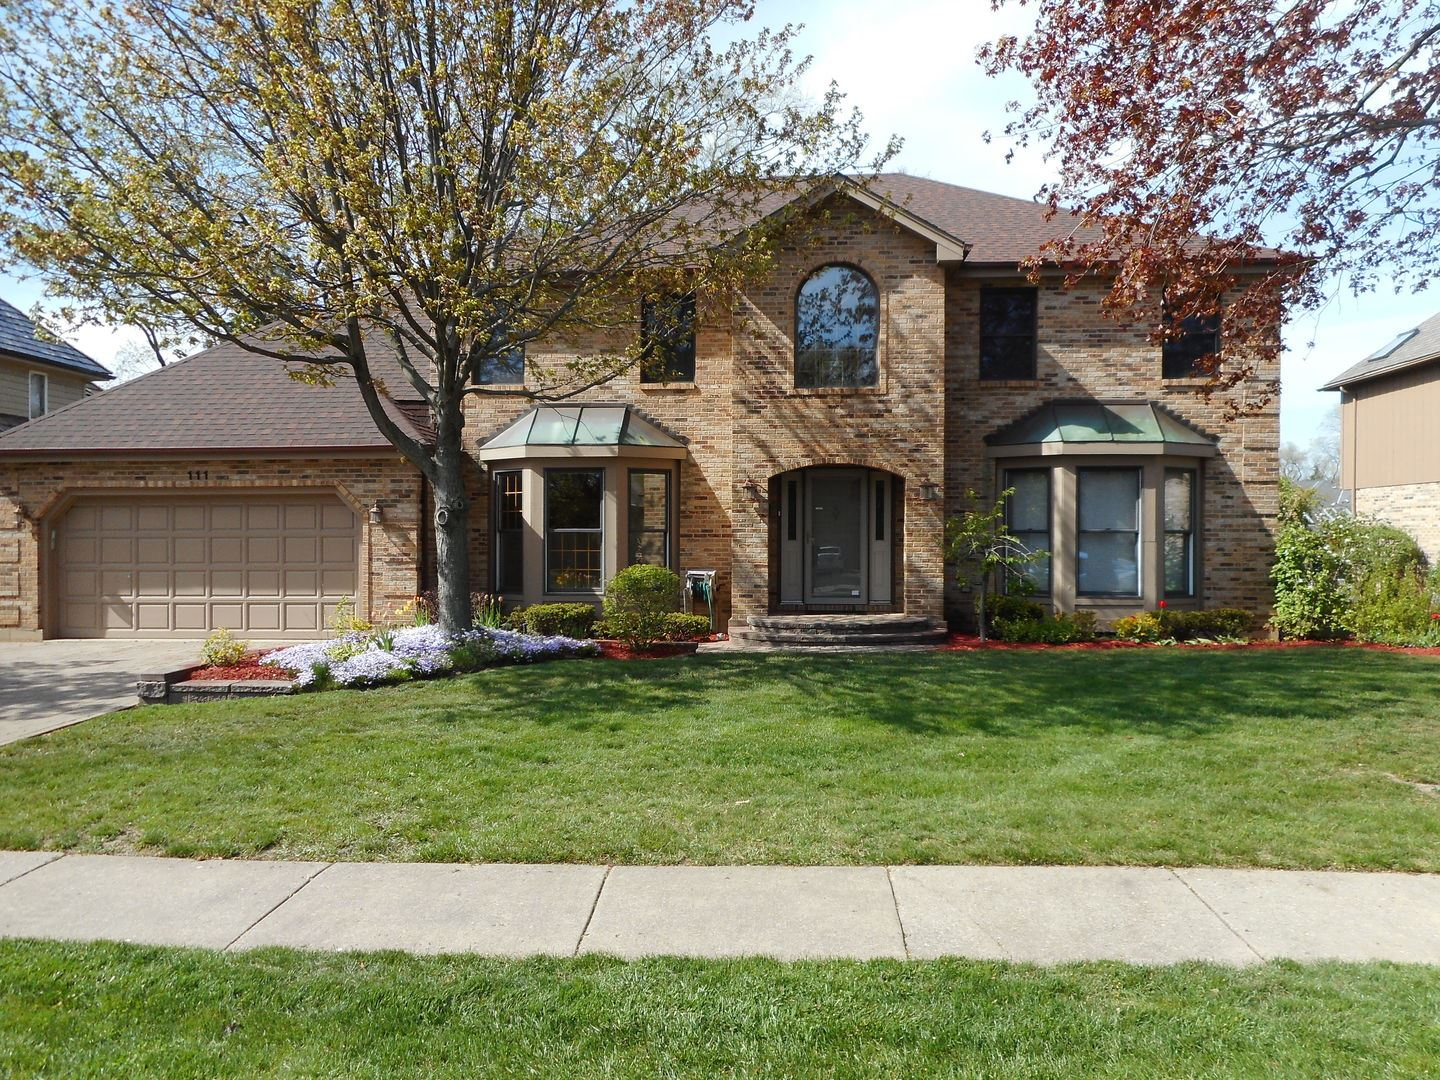 111 Founders Pointe Drive S, Bloomingdale, IL 60108 - #: 10709016